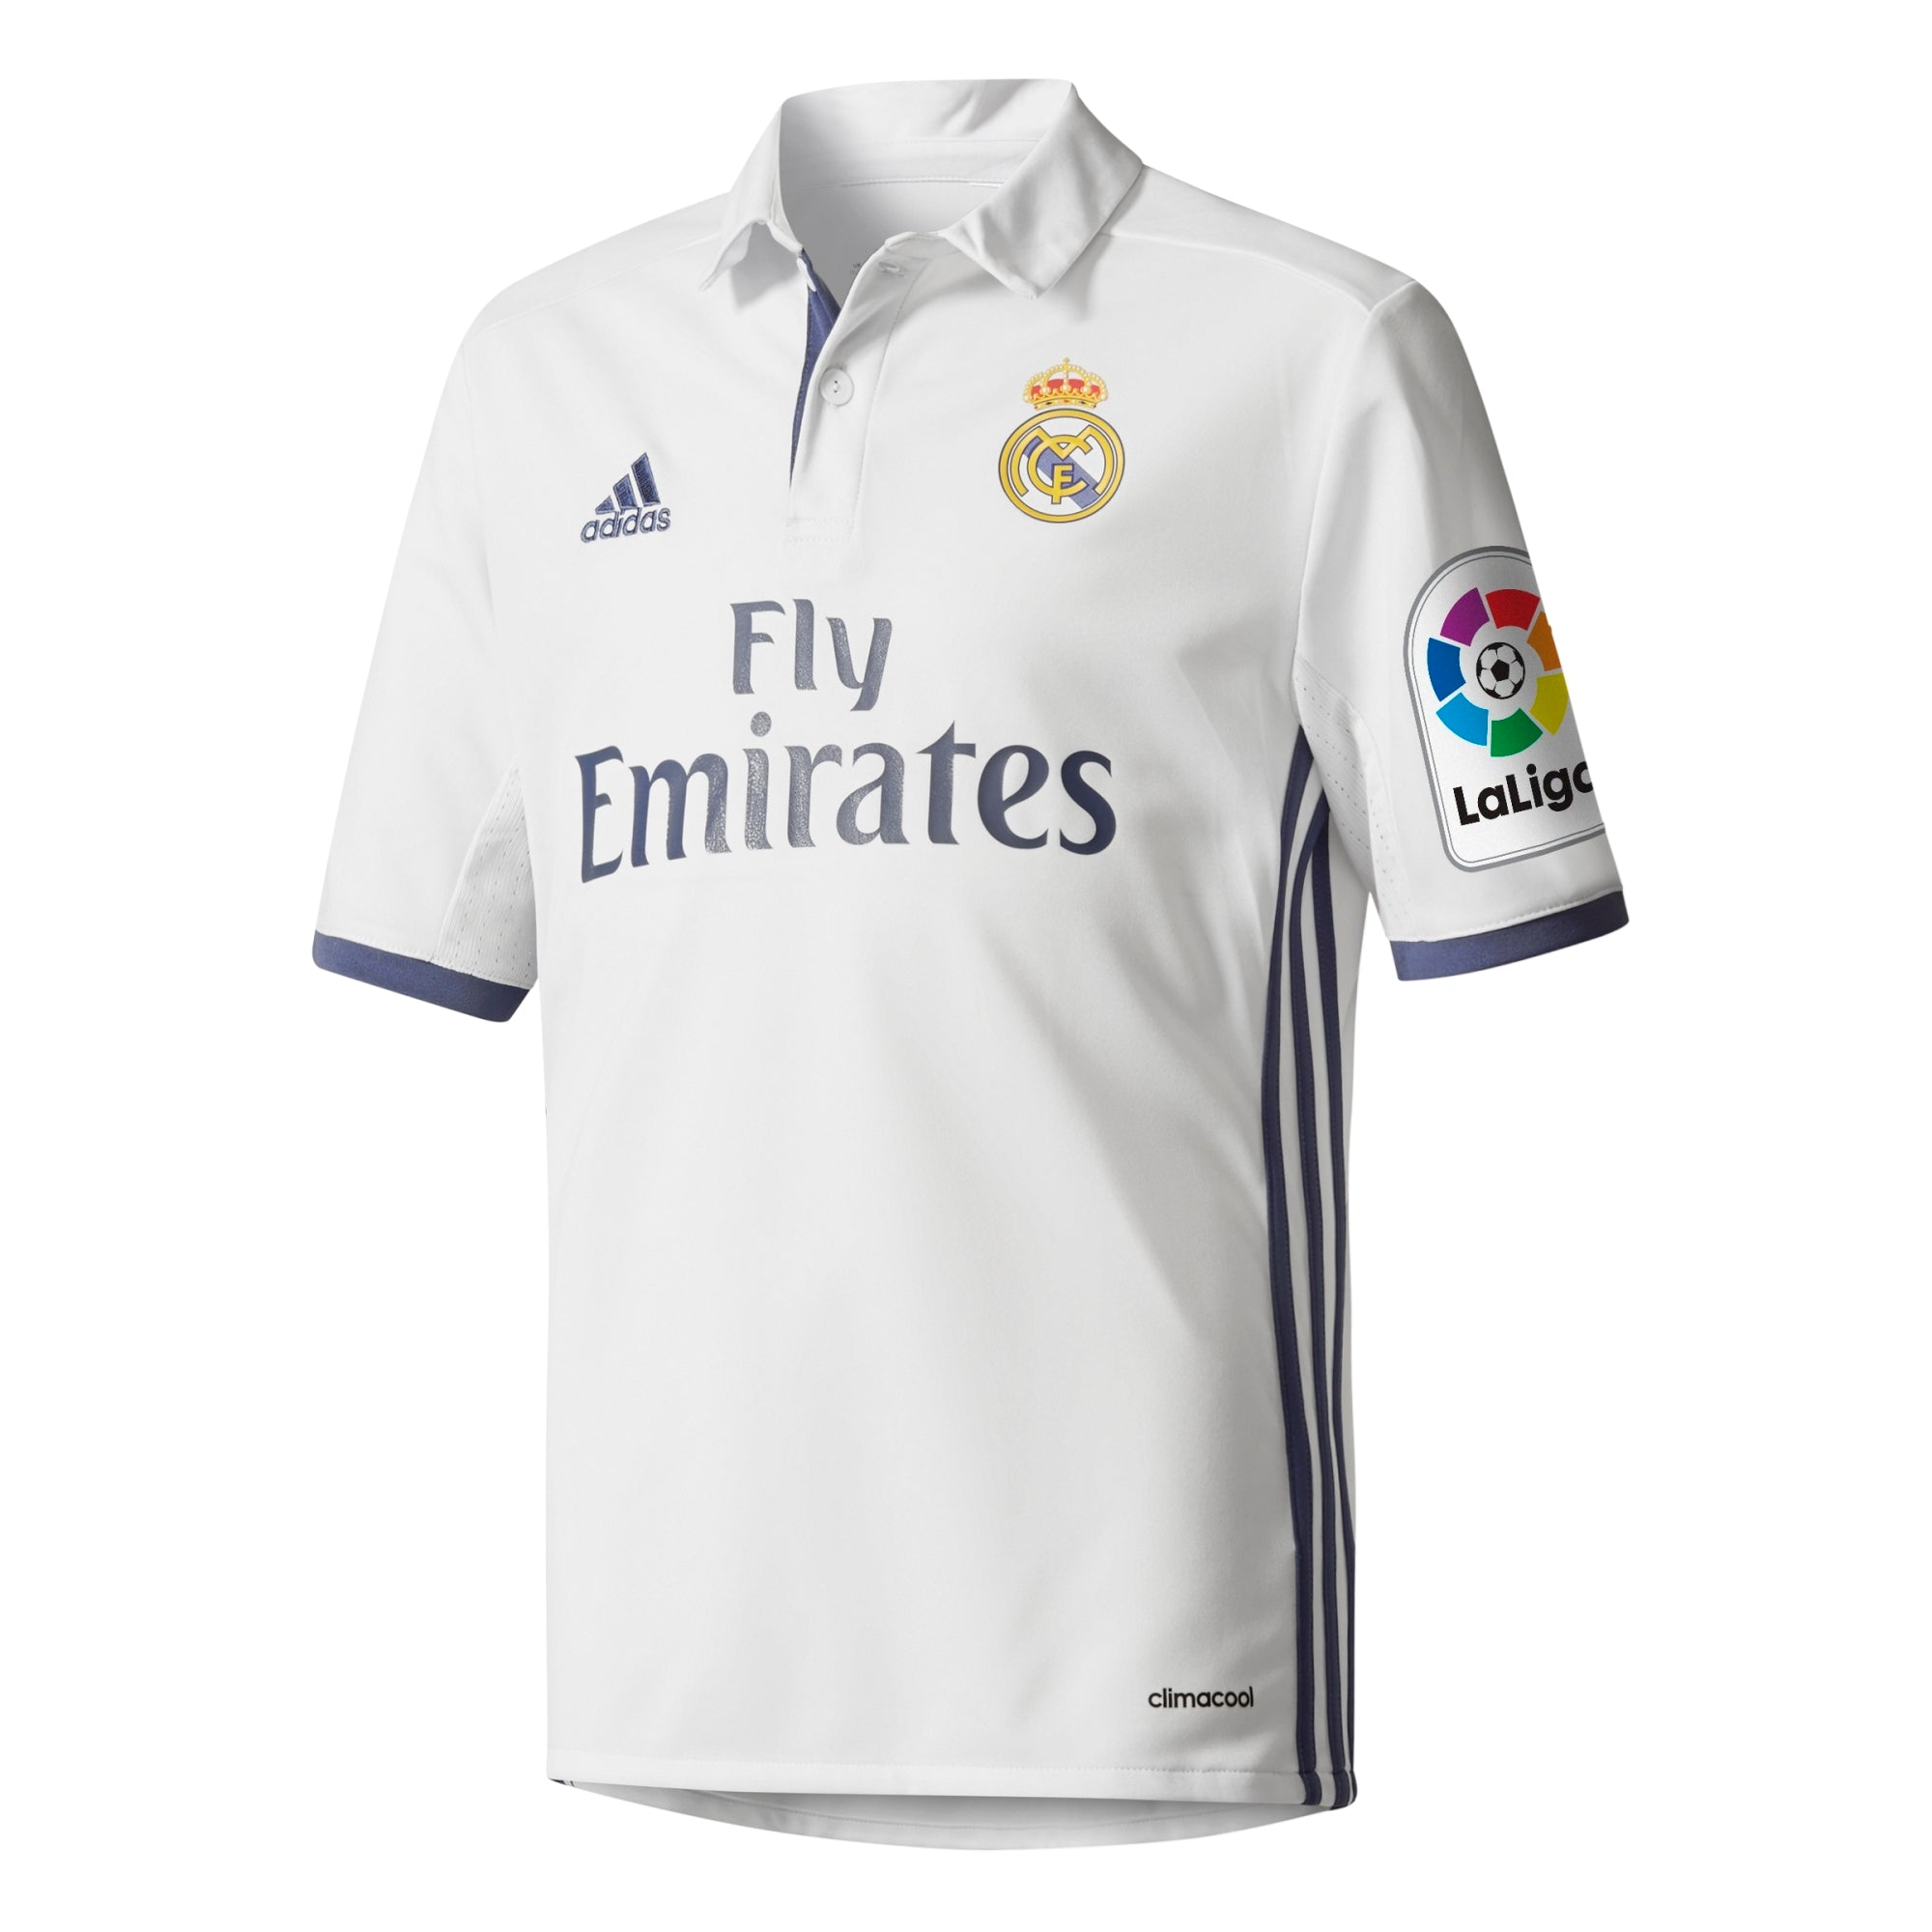 ADIDAS - REAL MADRID FC REPLICA YOUTH HOME JERSEY - Sportpower ... 4299a7dee